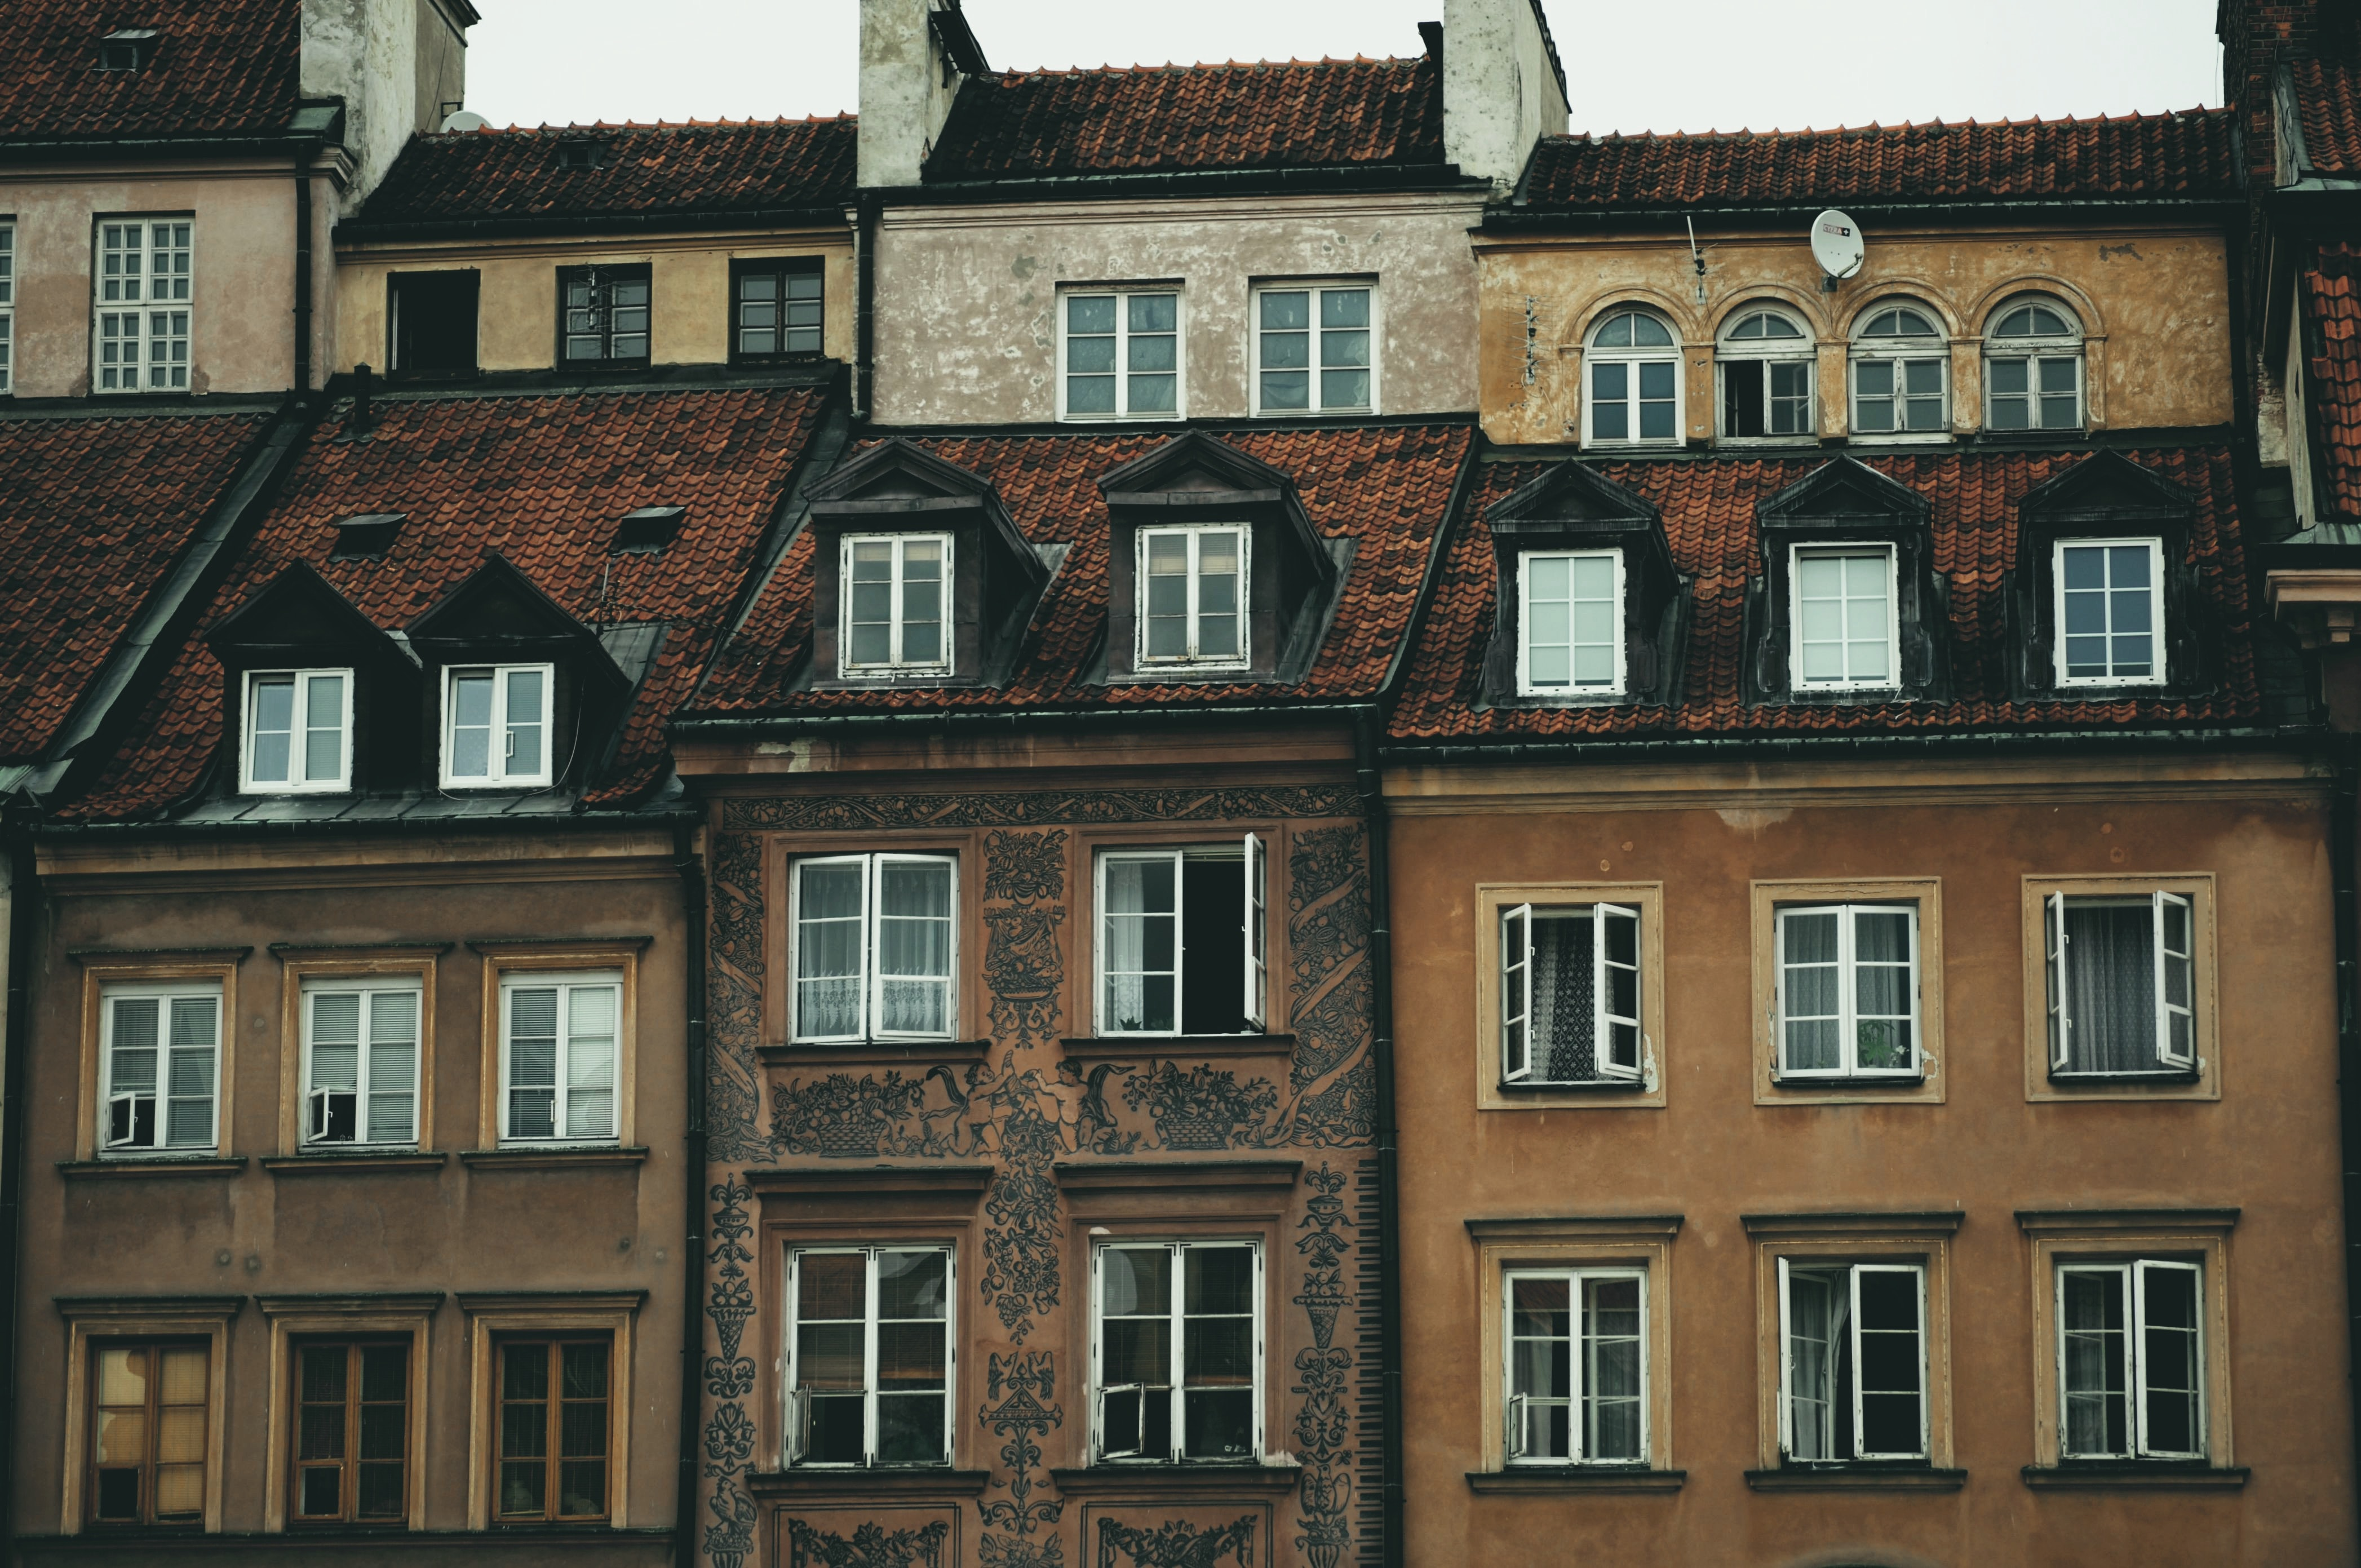 Two rows of stone and brick houses with brown roofs on an overcast day